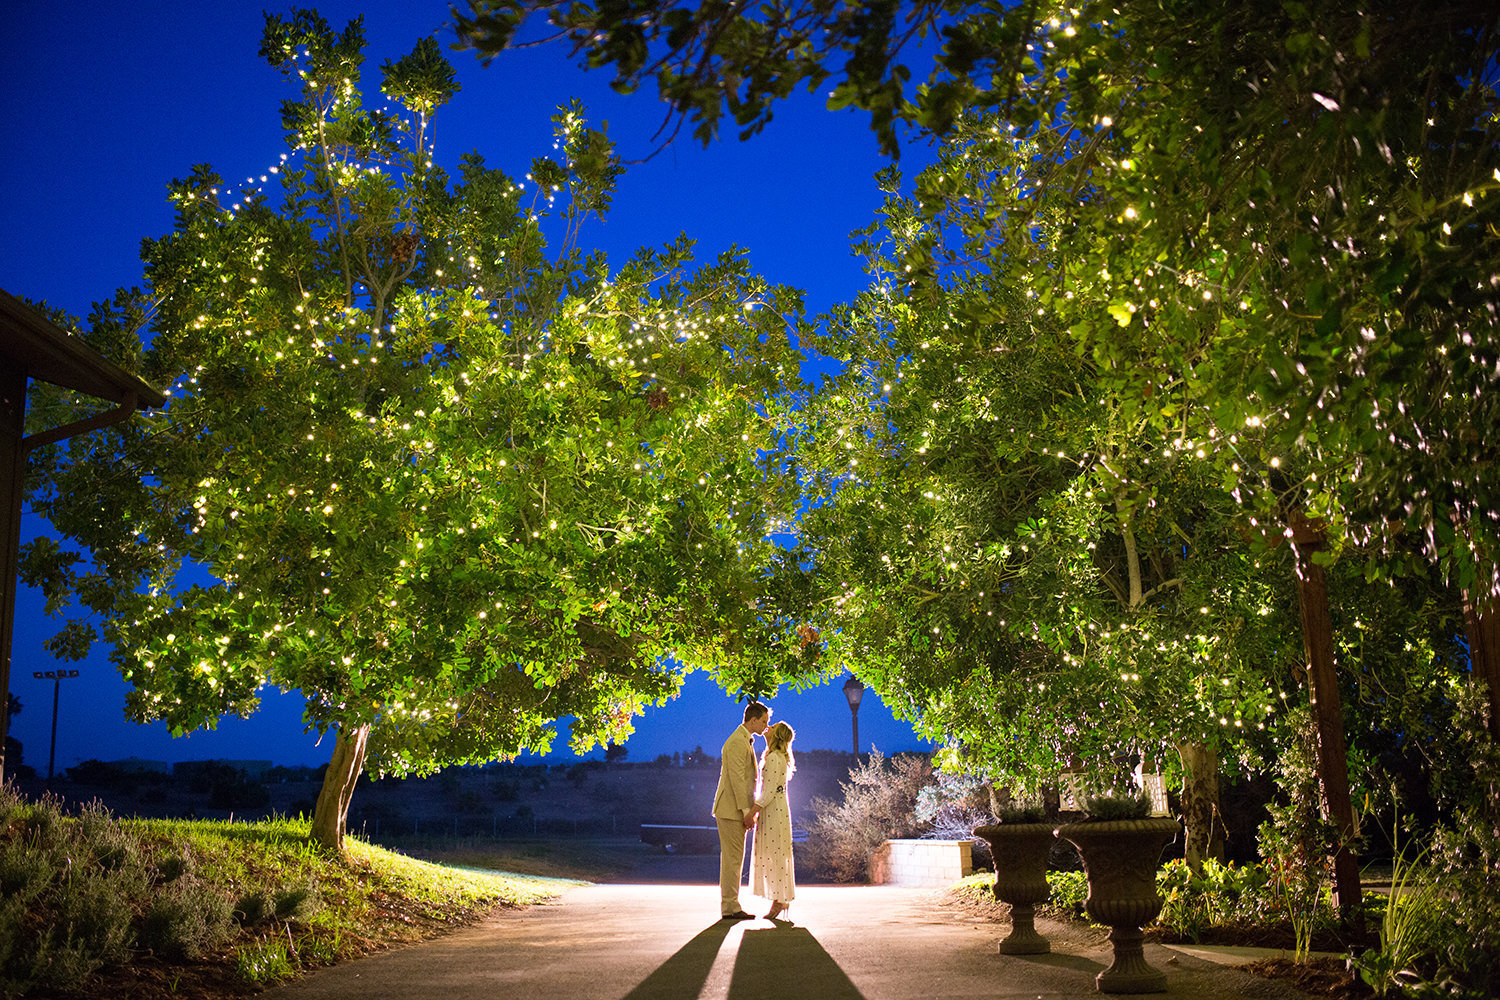 night image of bride and groom with beautiful trees